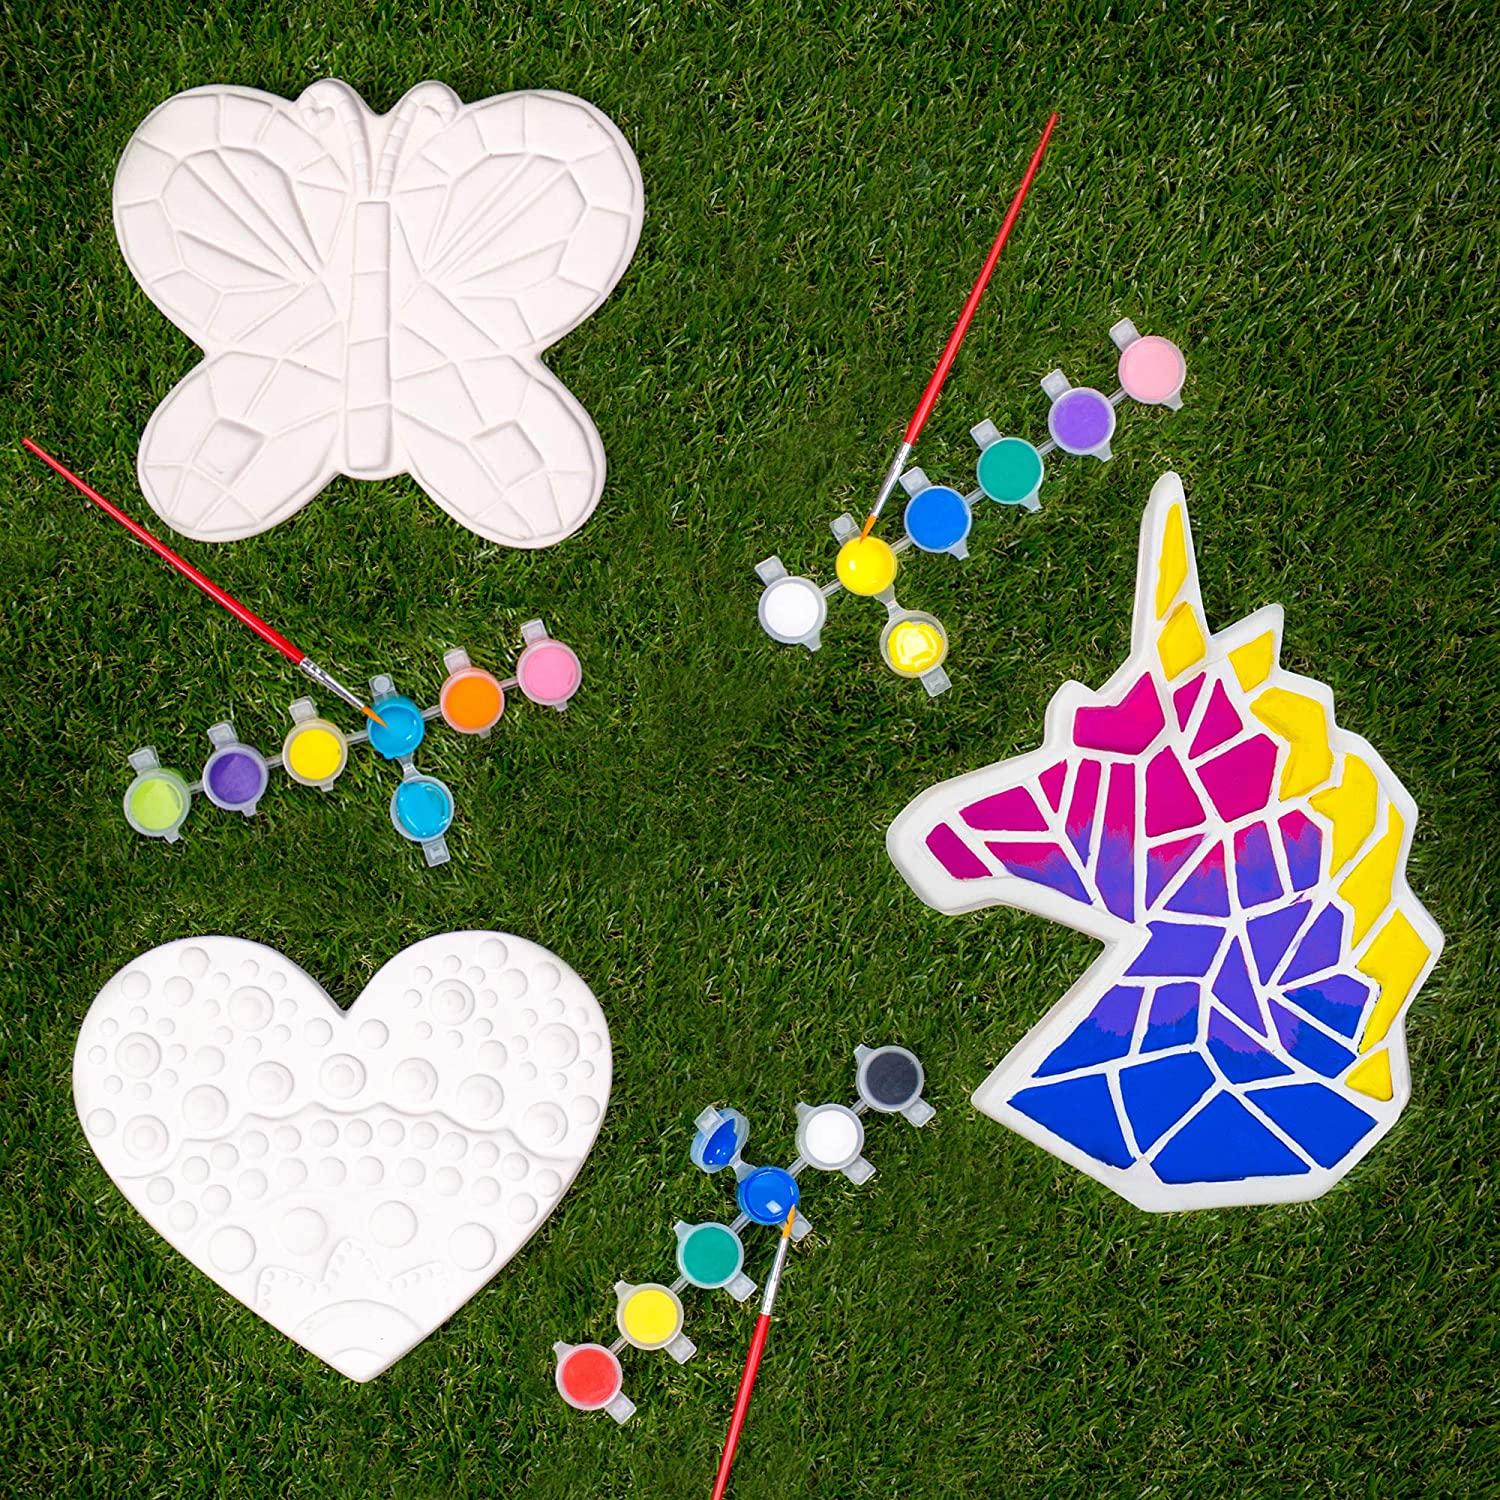 Creative Roots Paint Your Own Stepping Stones Multipack with Butterfly, Unicorn & Heart Stepping Stones by Horizon Group USA